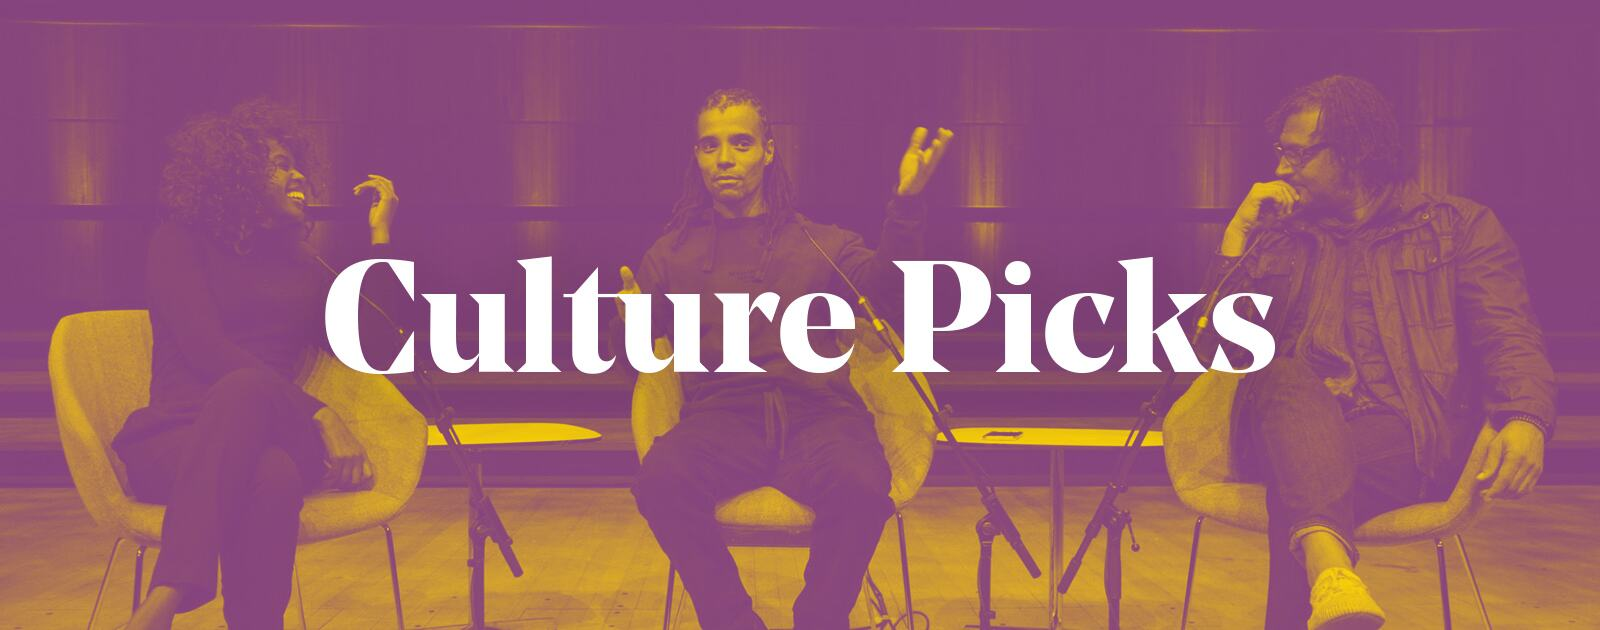 Culture Picks Graphic featuring June Sarpong, Akala and David Olusoga and the wrods 'Culture Picks'